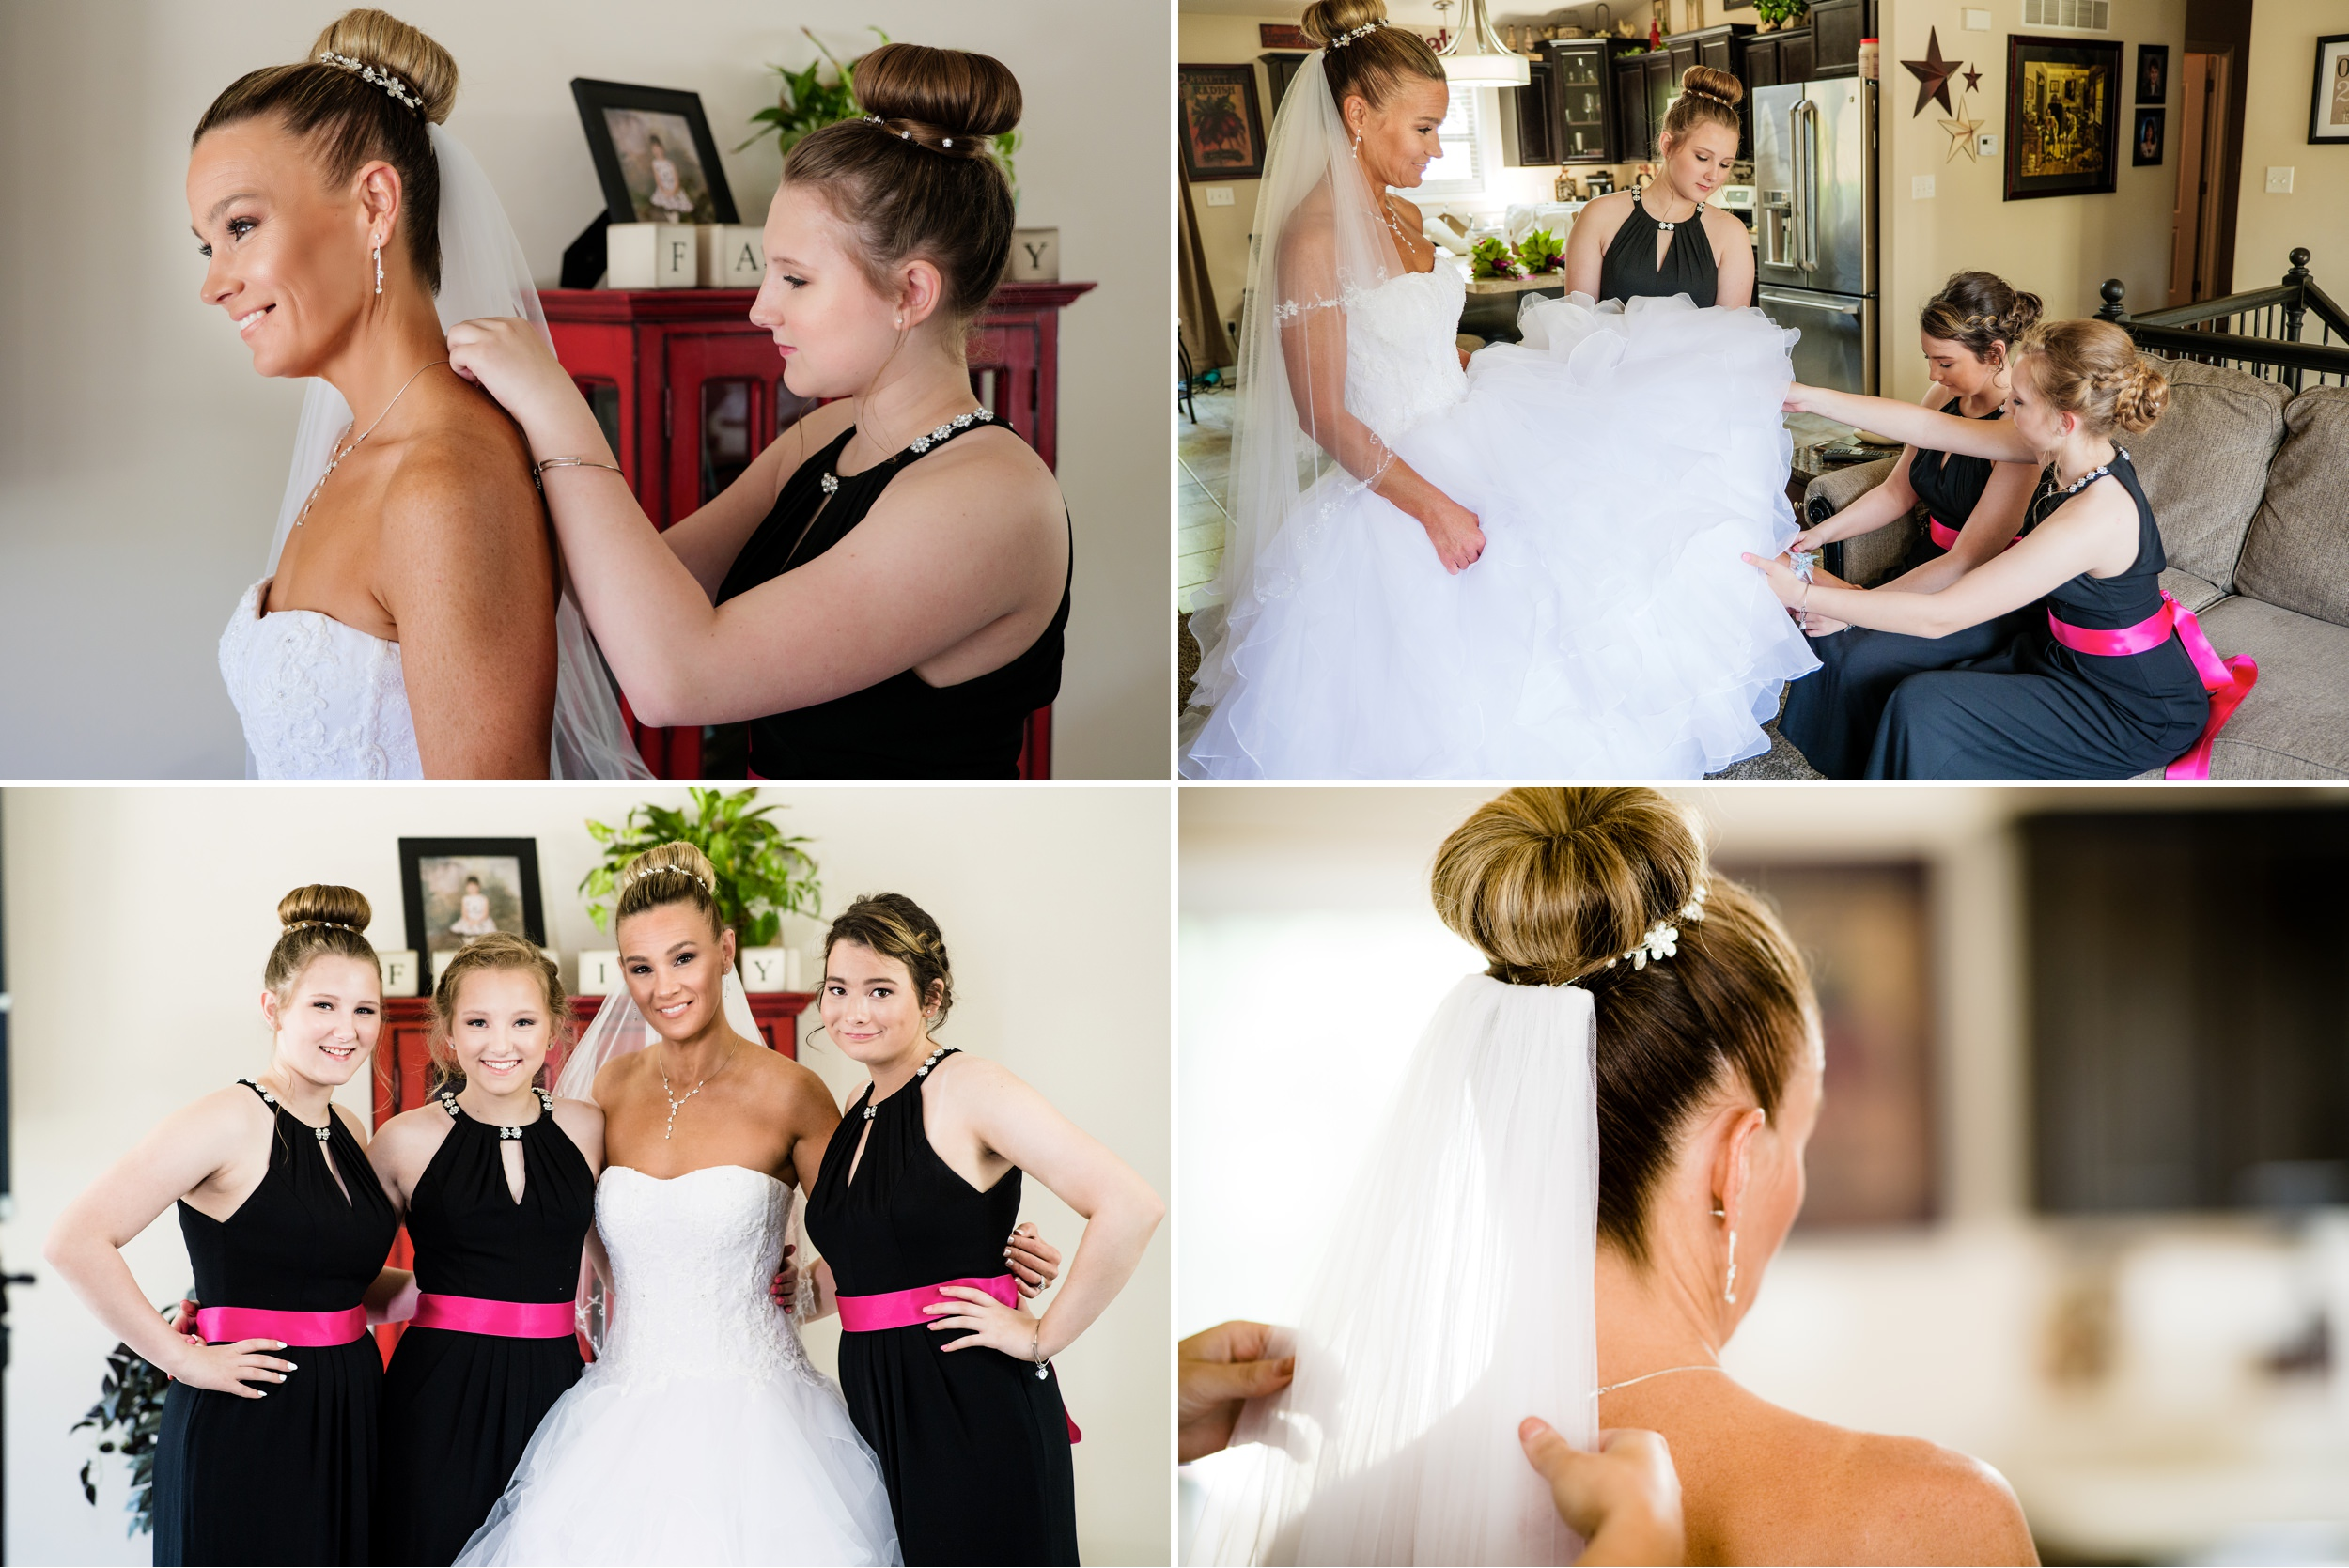 Bridal prep for a Crown Point wedding.